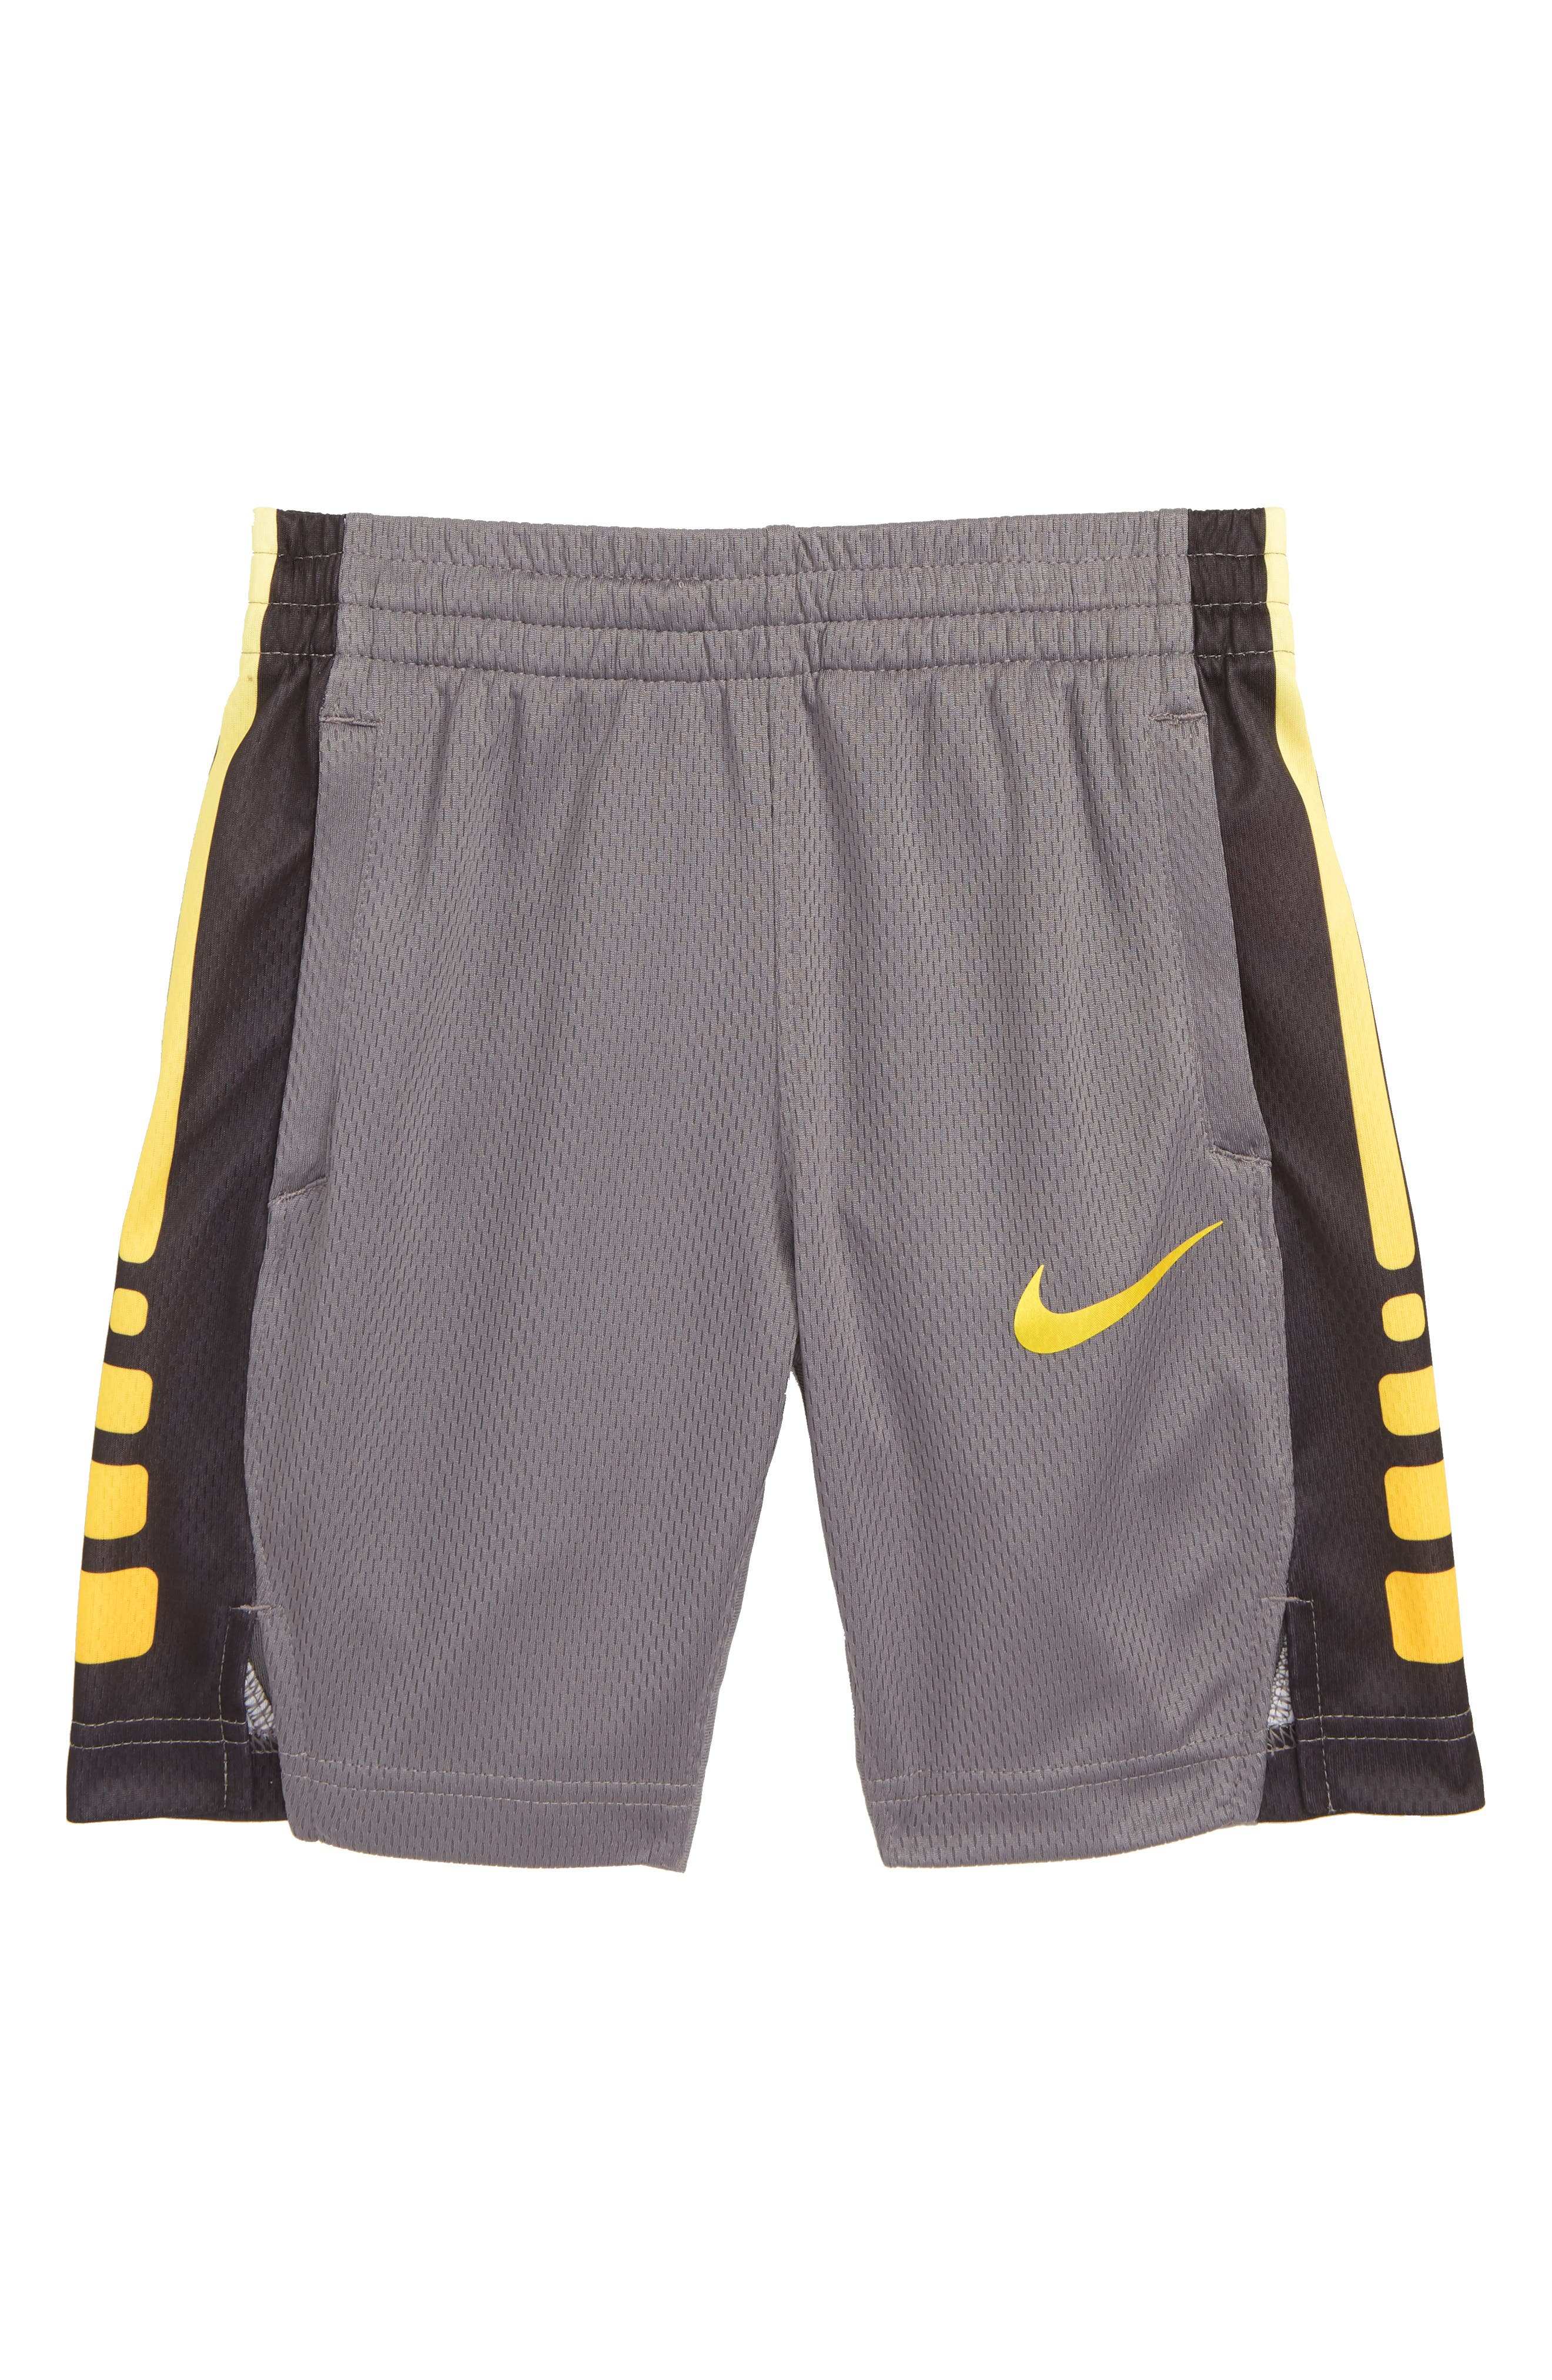 Elite Stripe Shorts,                         Main,                         color, GUNSMOKE